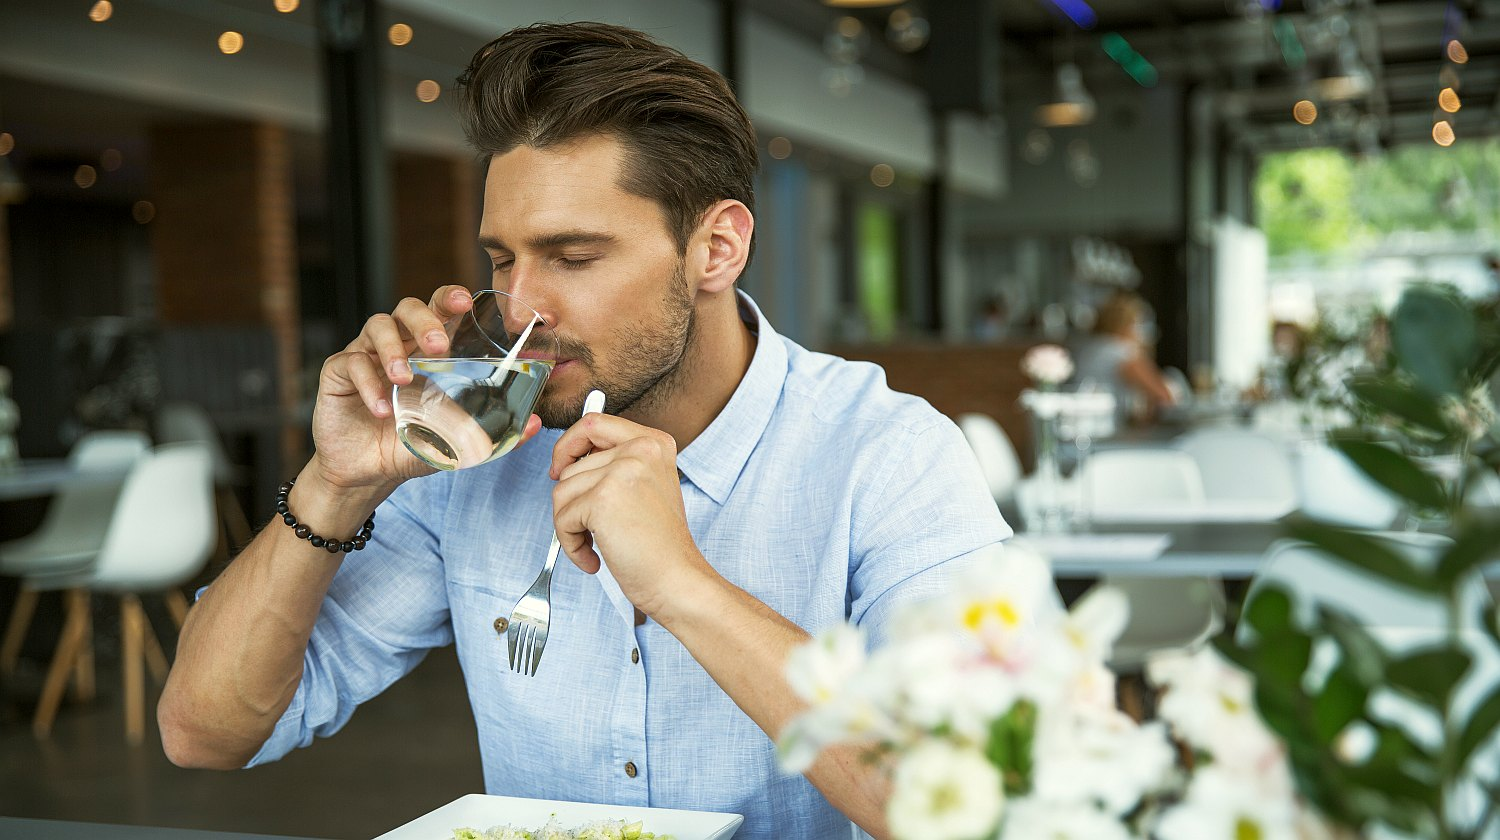 Feature | Handsome man drinking water | Health Tips And Hacks To Live By